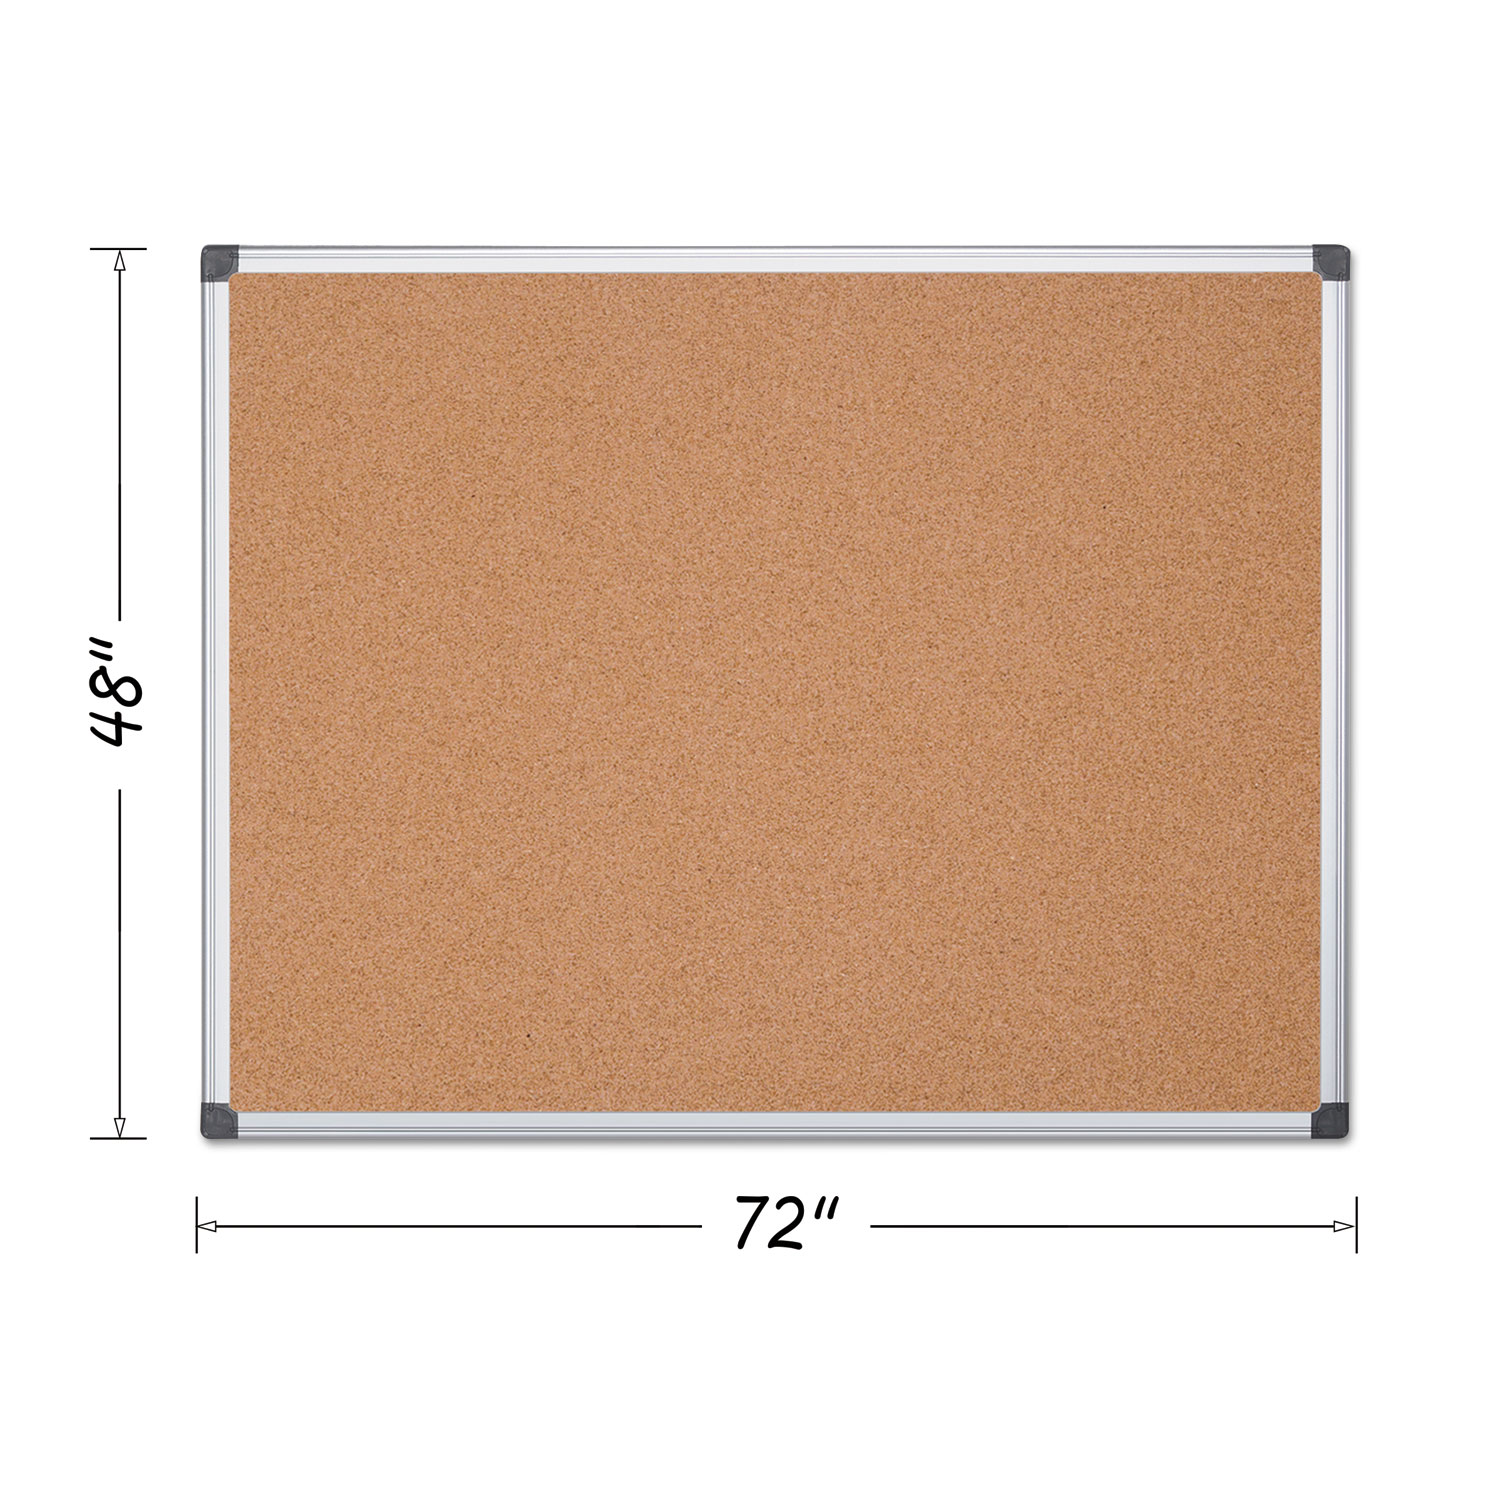 Value Cork Bulletin Board with Aluminum Frame, 48 x 72, Natural